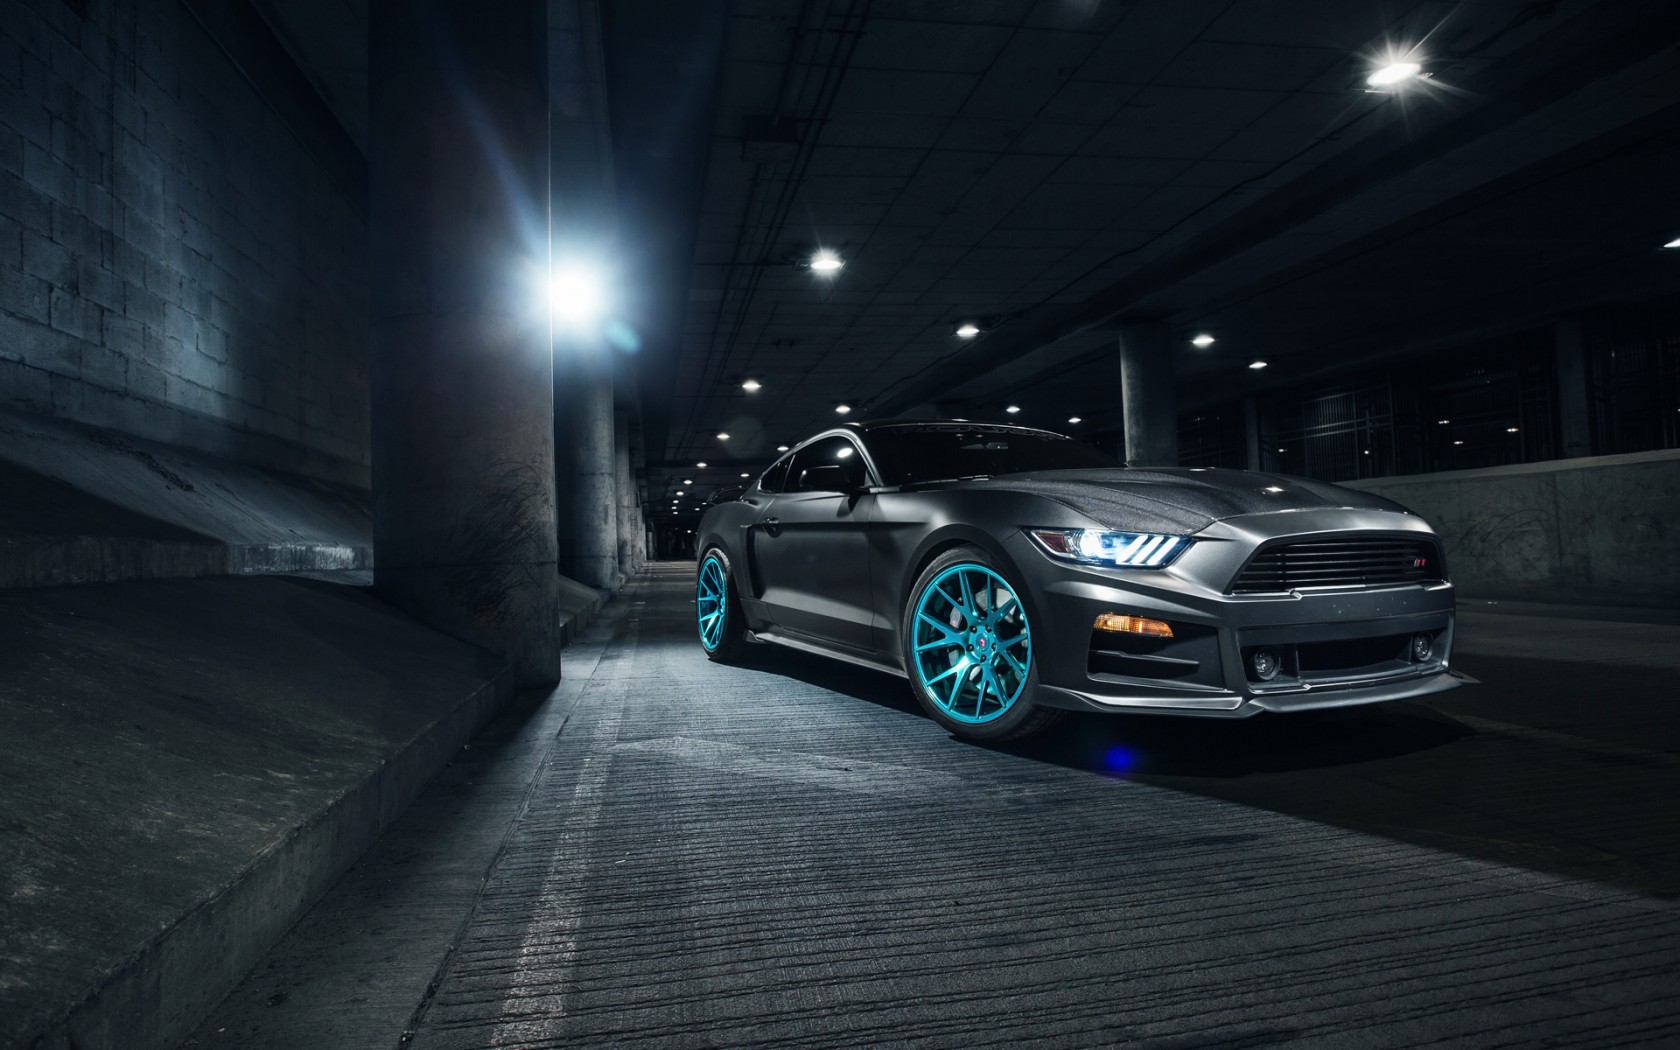 Roush Ford Mustang Vossen Wheels 2 Wallpaper Hd Car